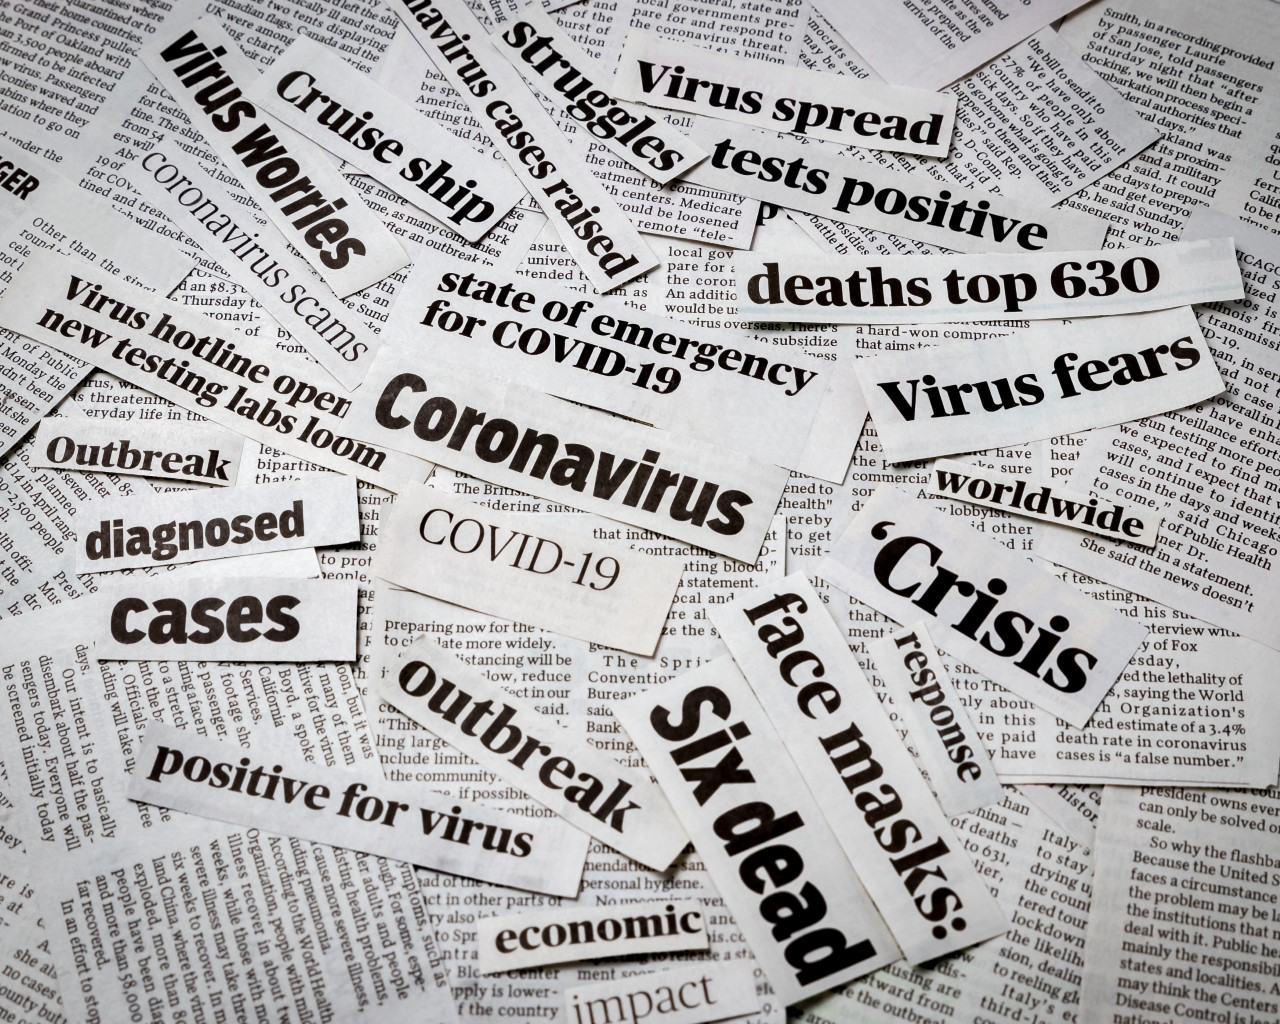 Research: More than half of Canadians trust news media for Coronavirus information